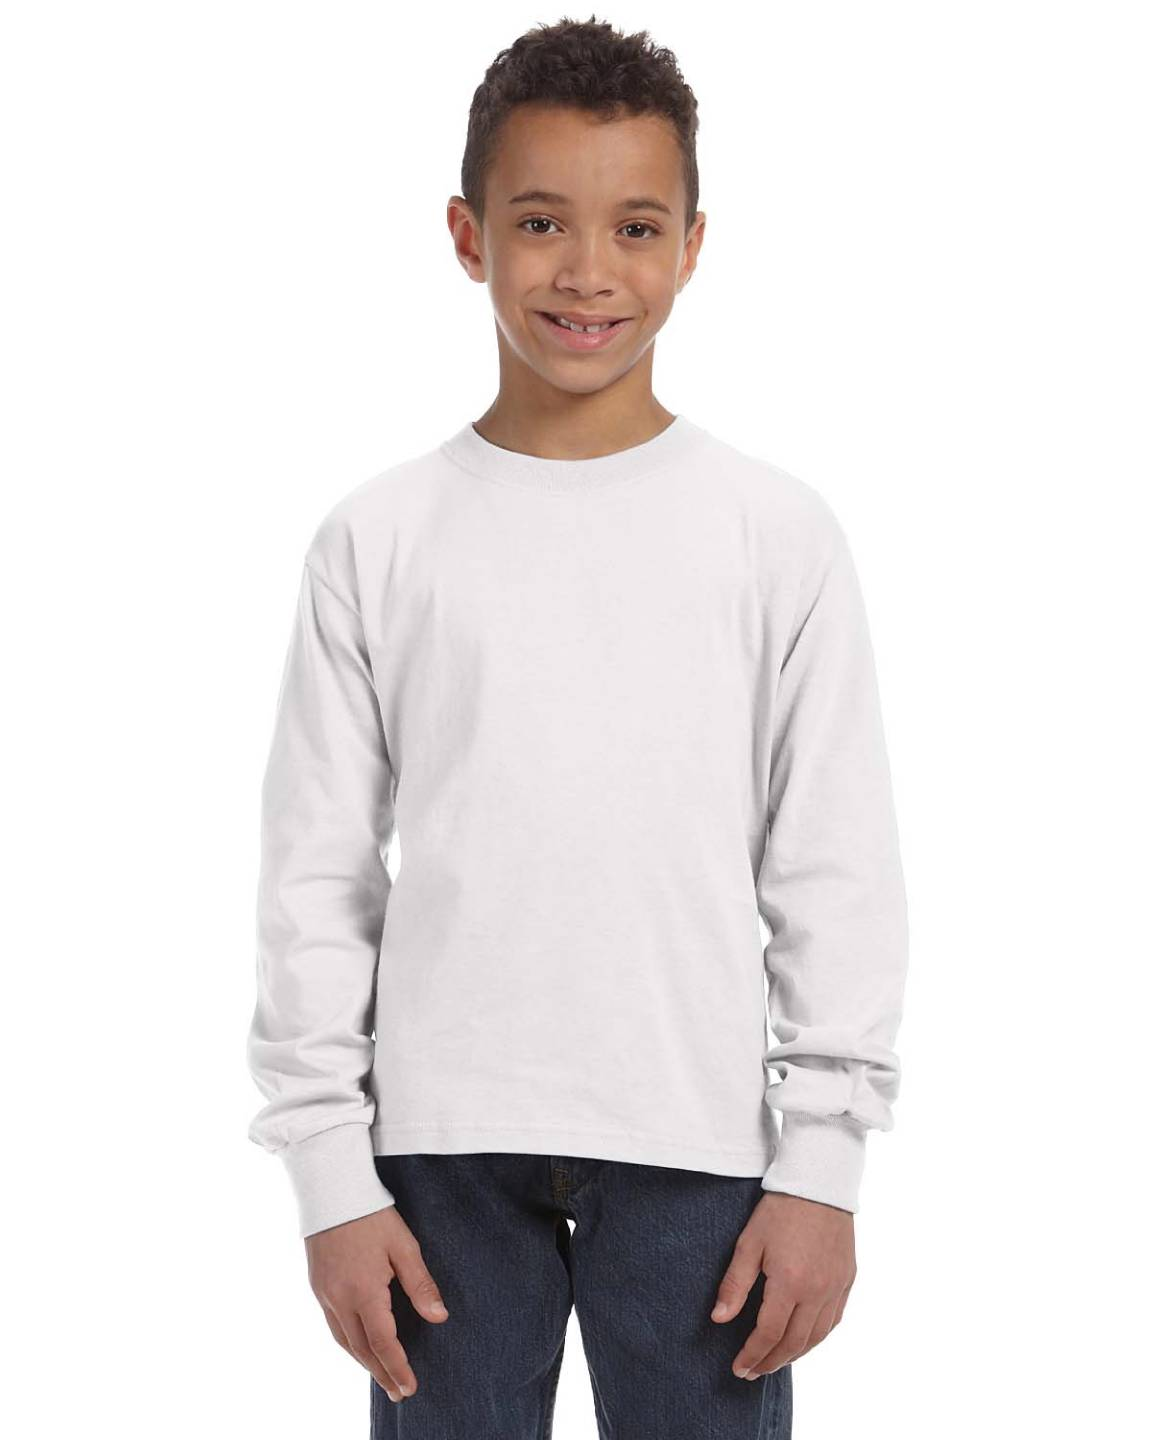 Fruit of the Loom Youth 5 oz 100% Heavy Cotton HD Long Sleeve T-Shirt 4930B